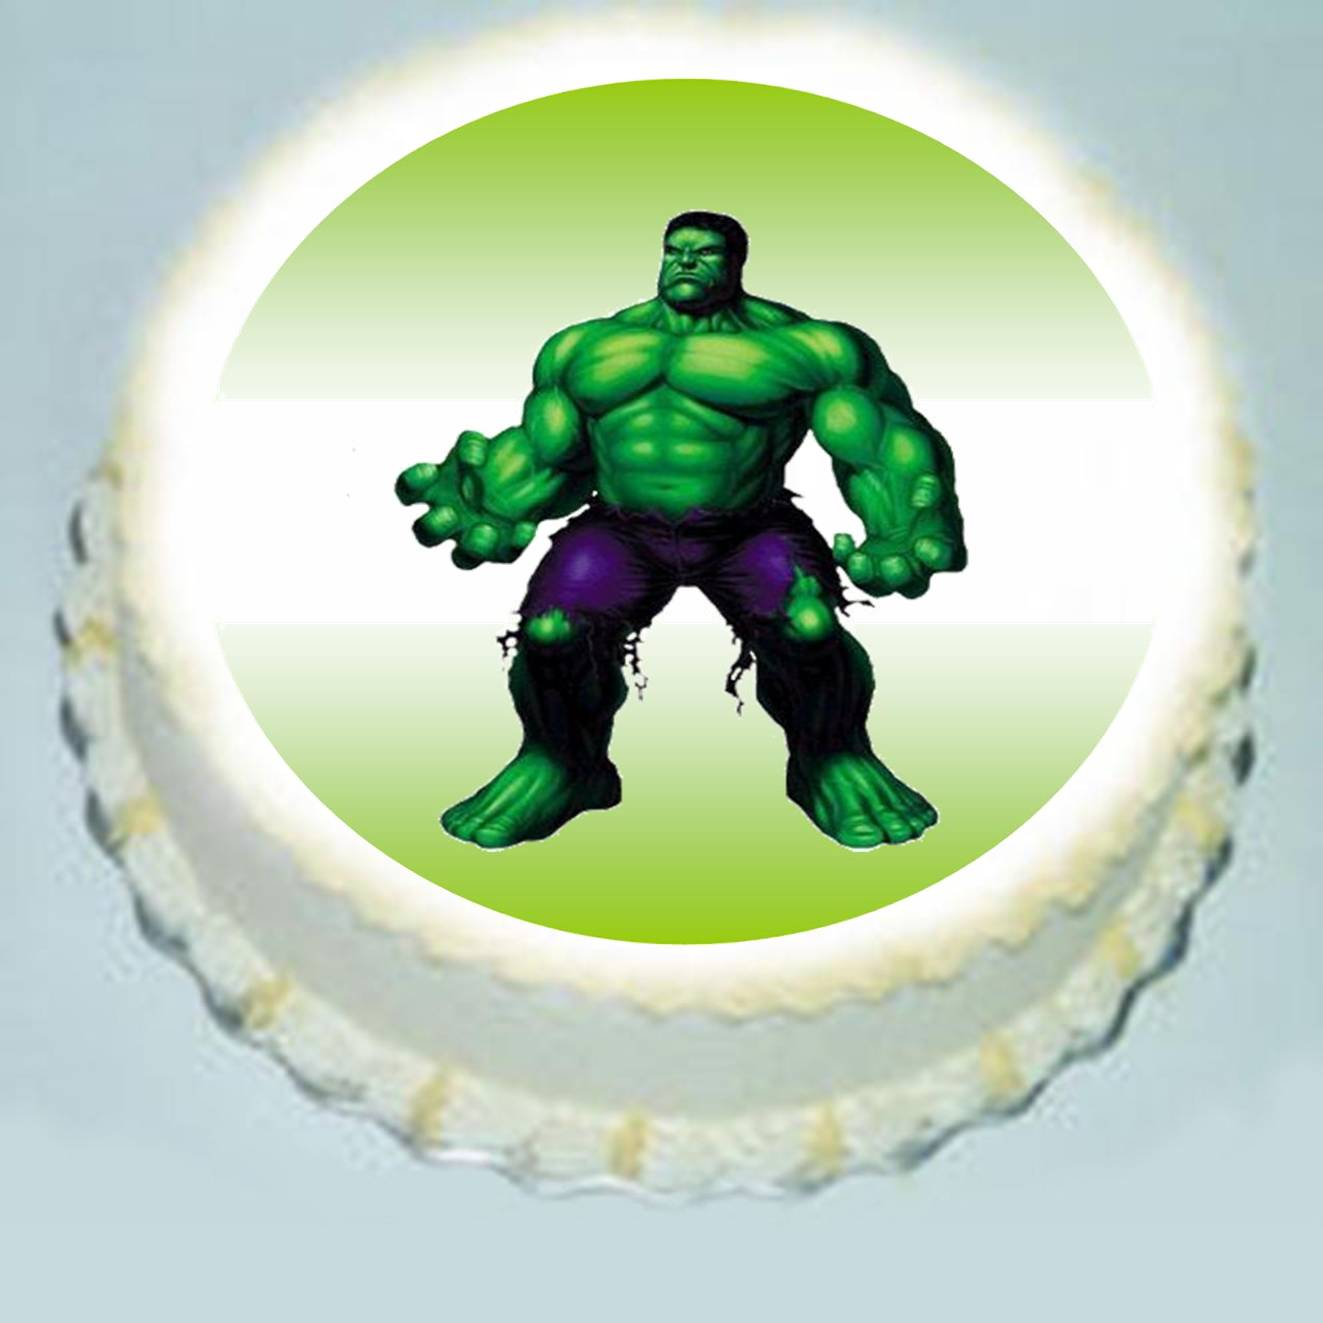 Hulken Pictures To Pin On Pinterest